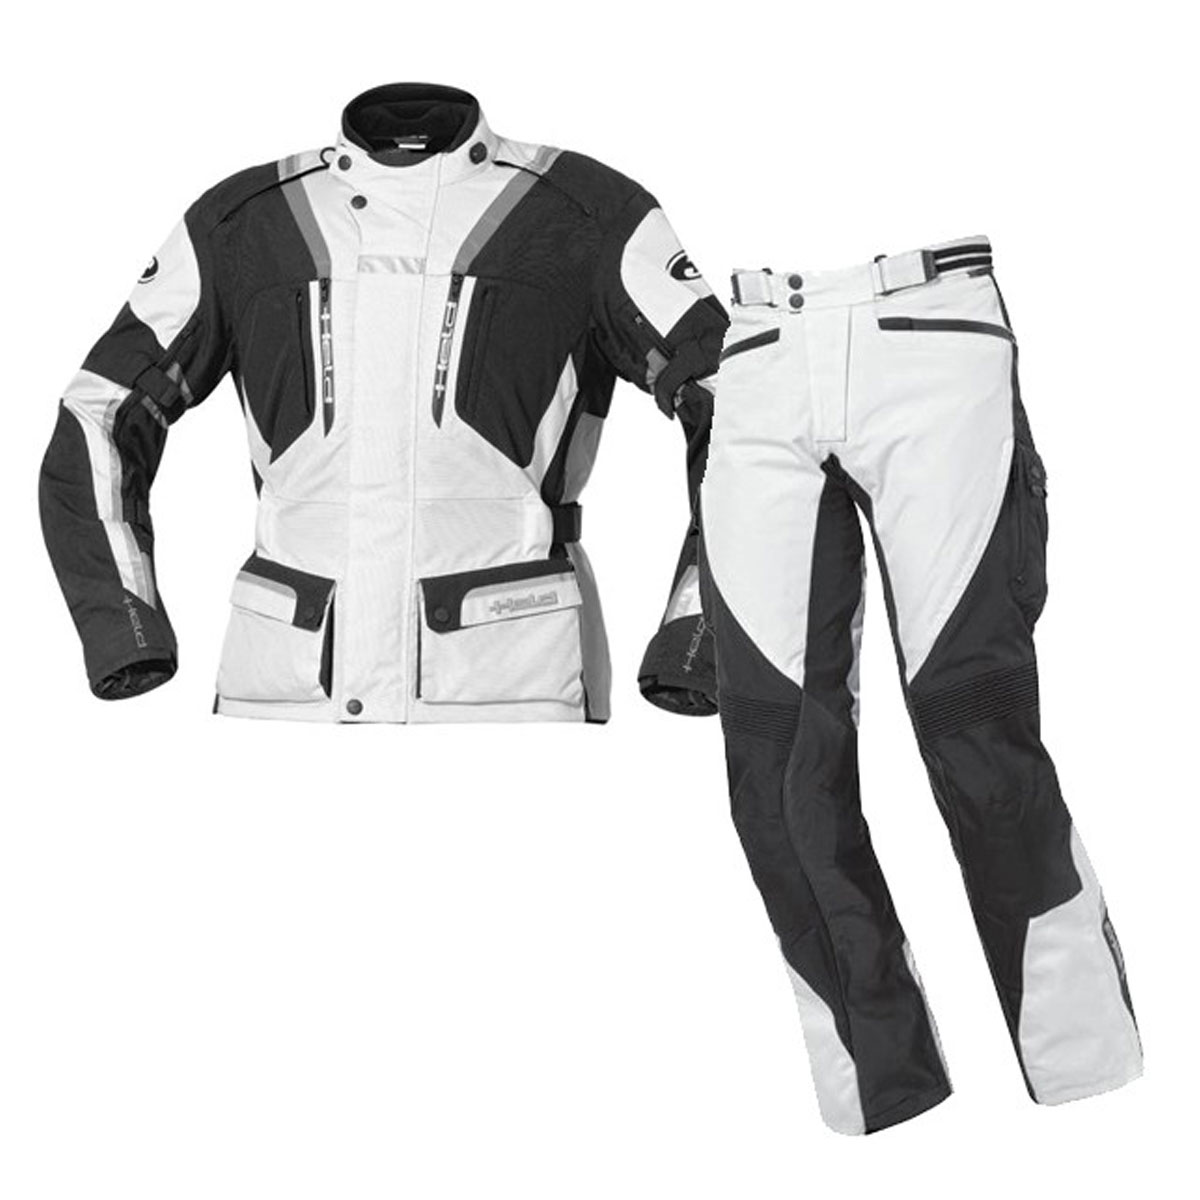 BLACK & WHITE CORDURA SUIT